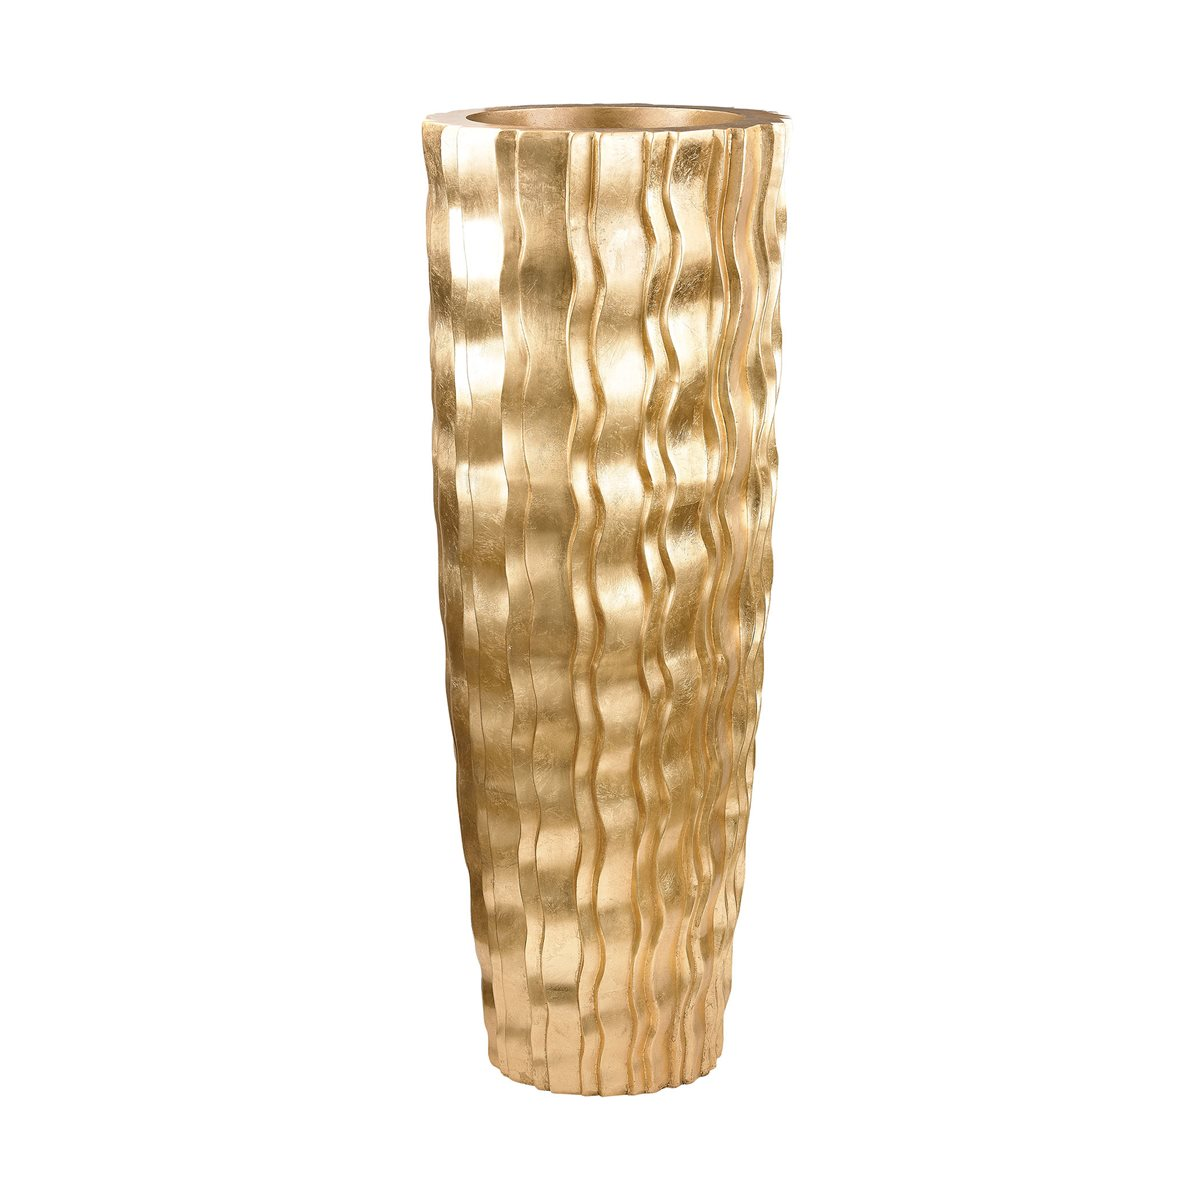 GOLD WAVE FLOOR VASE